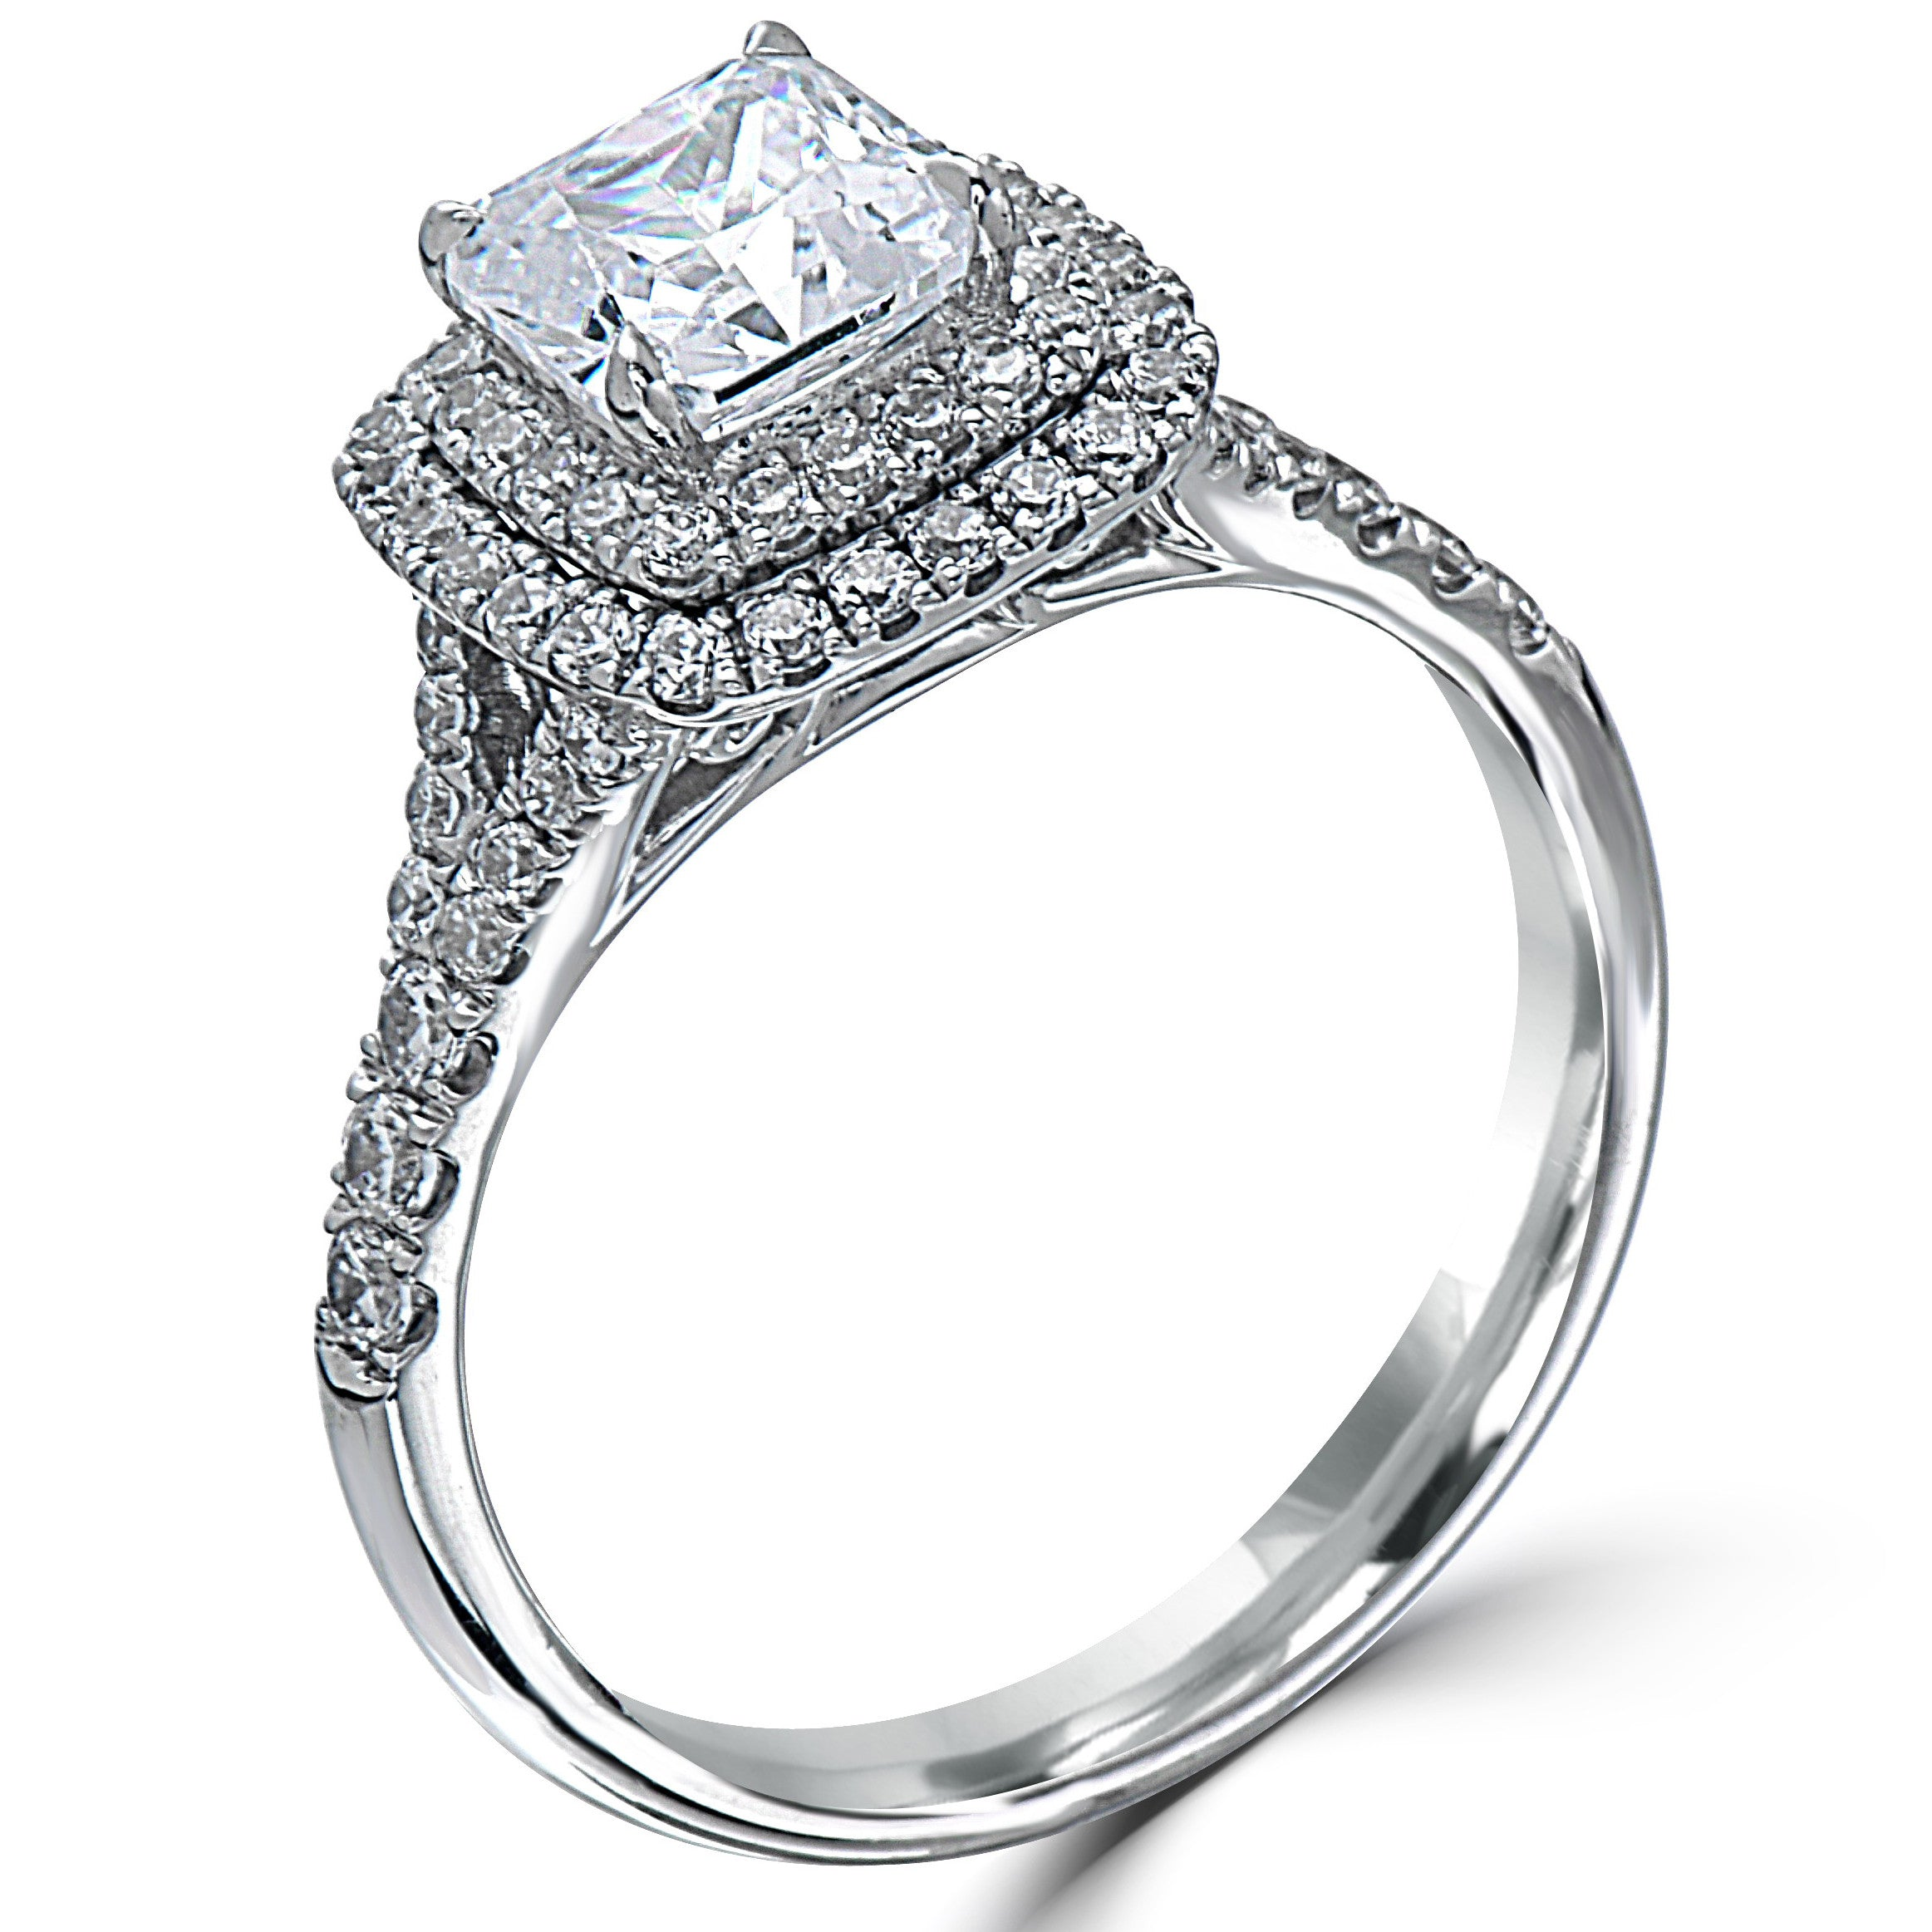 rings pav platinium ring for in p sapphire and pave platinum engagement diamond shop amp